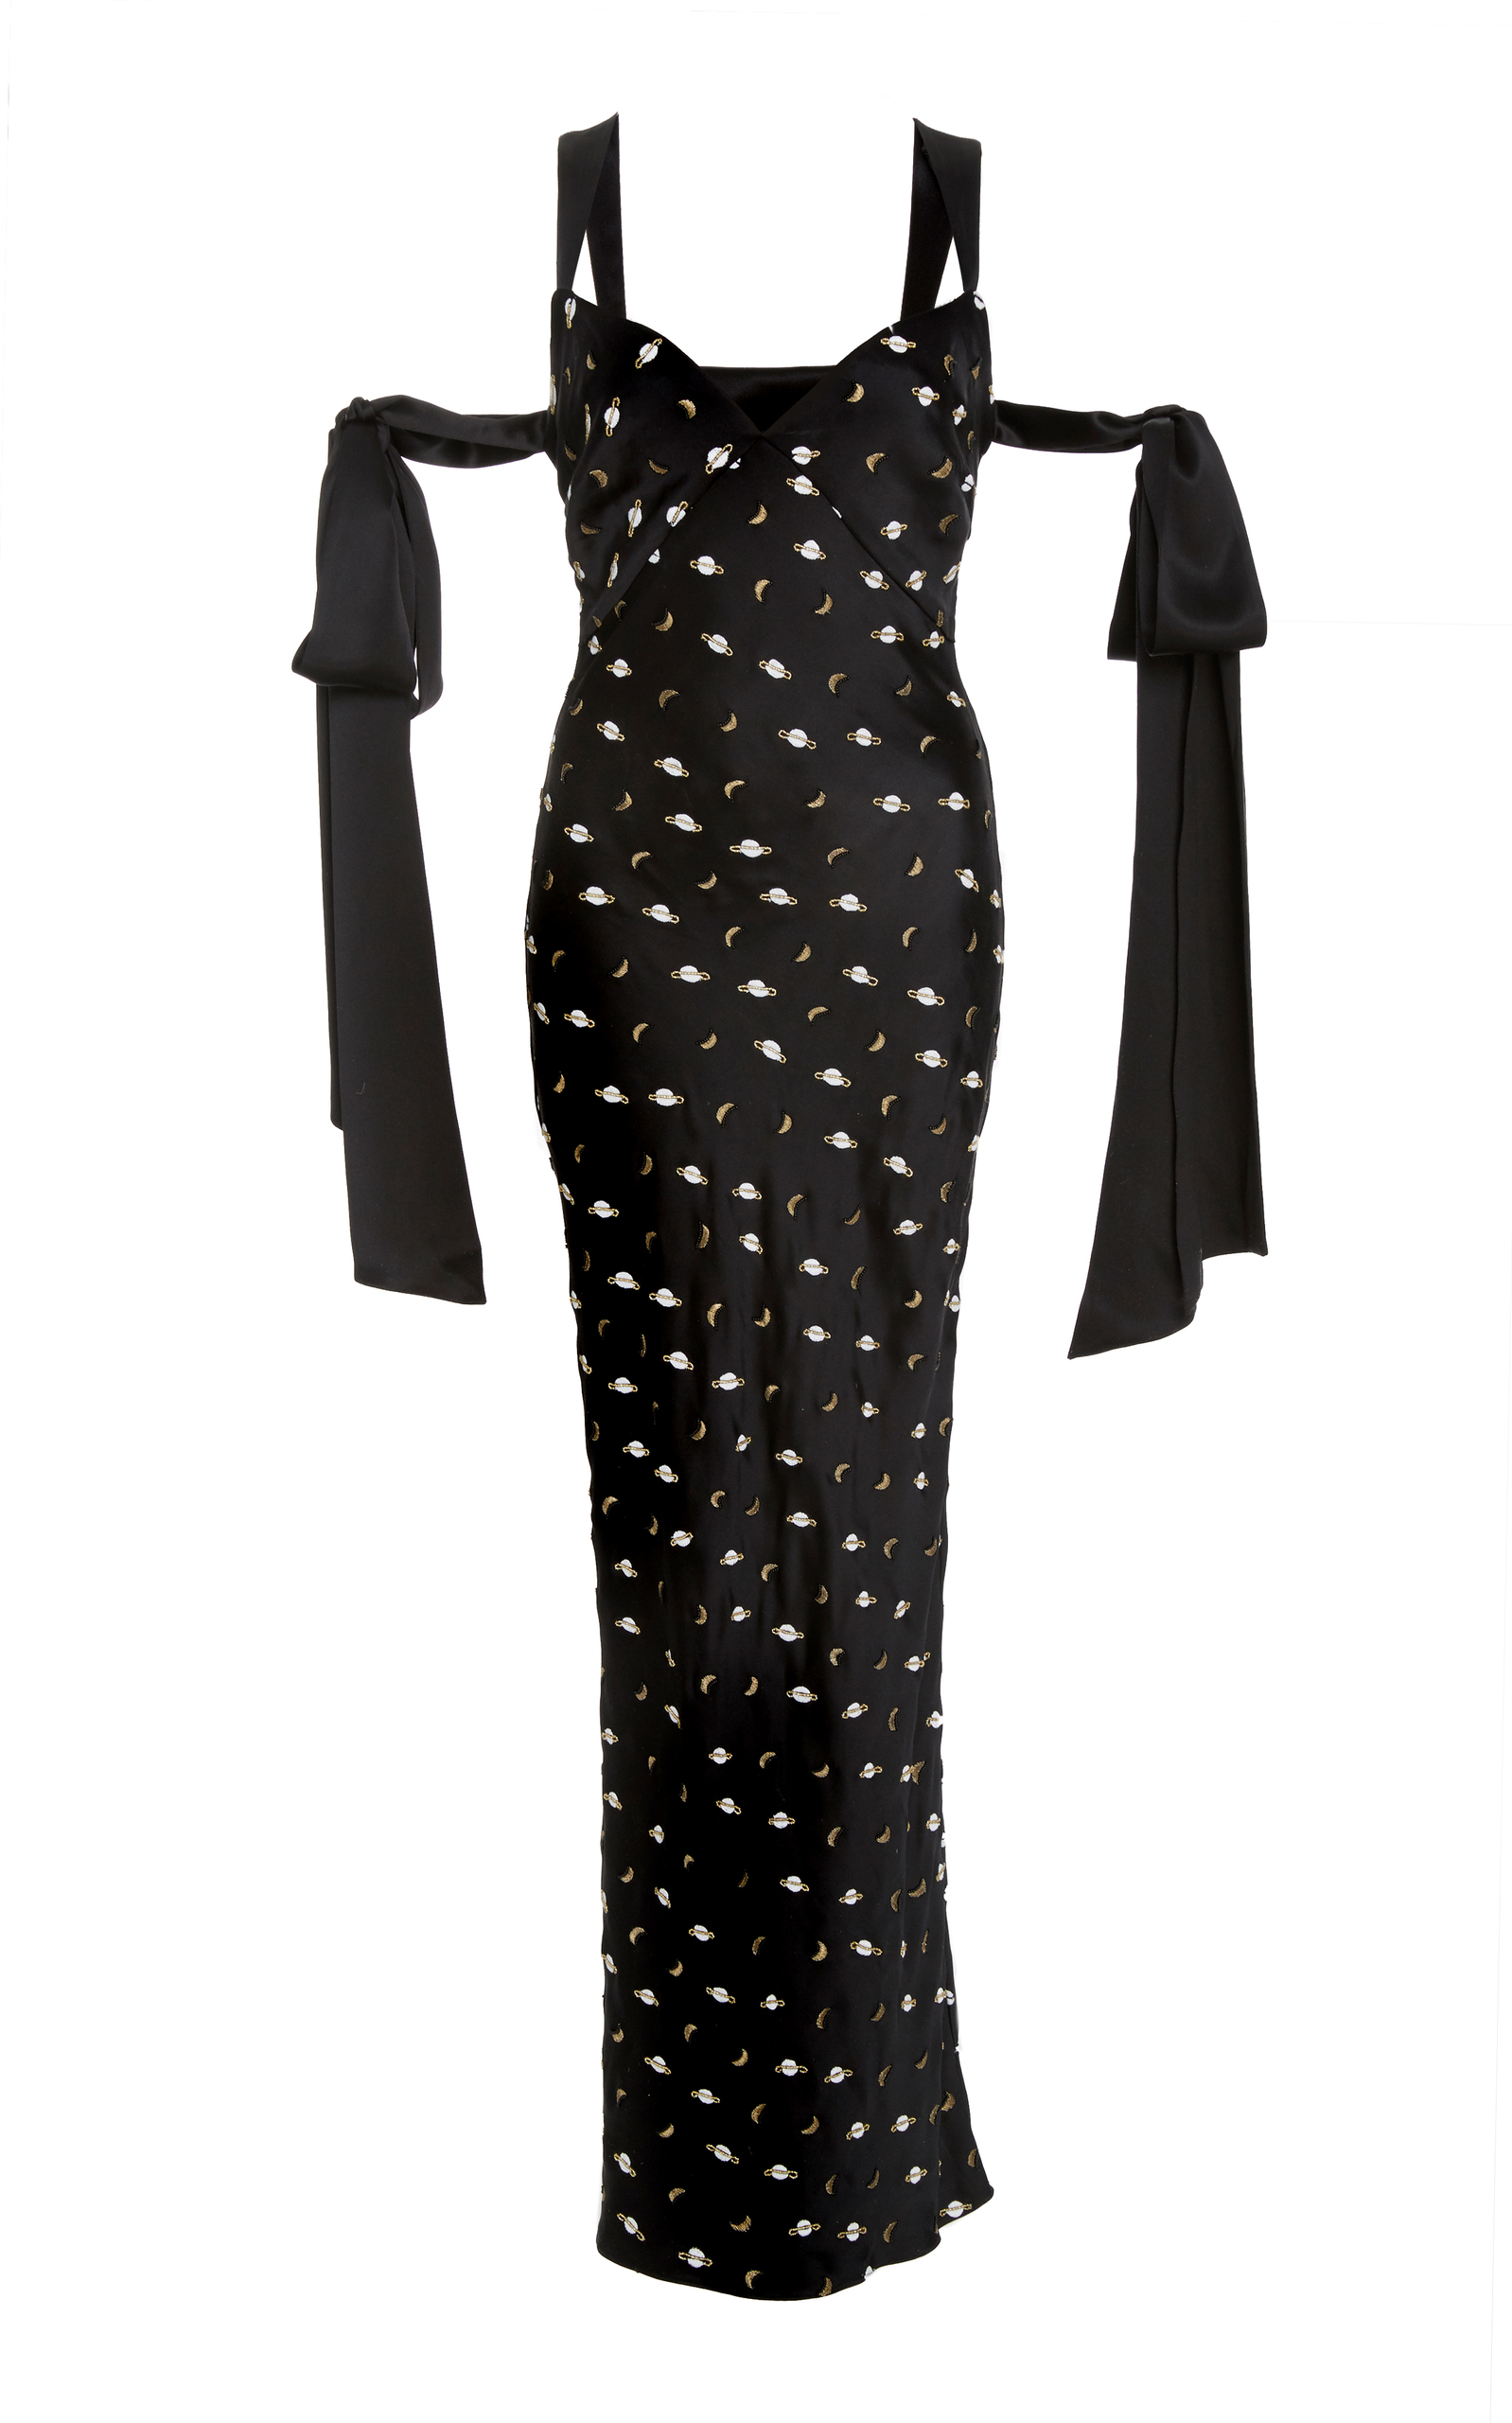 MARKARIAN AQUARIUS BEADED DRESS